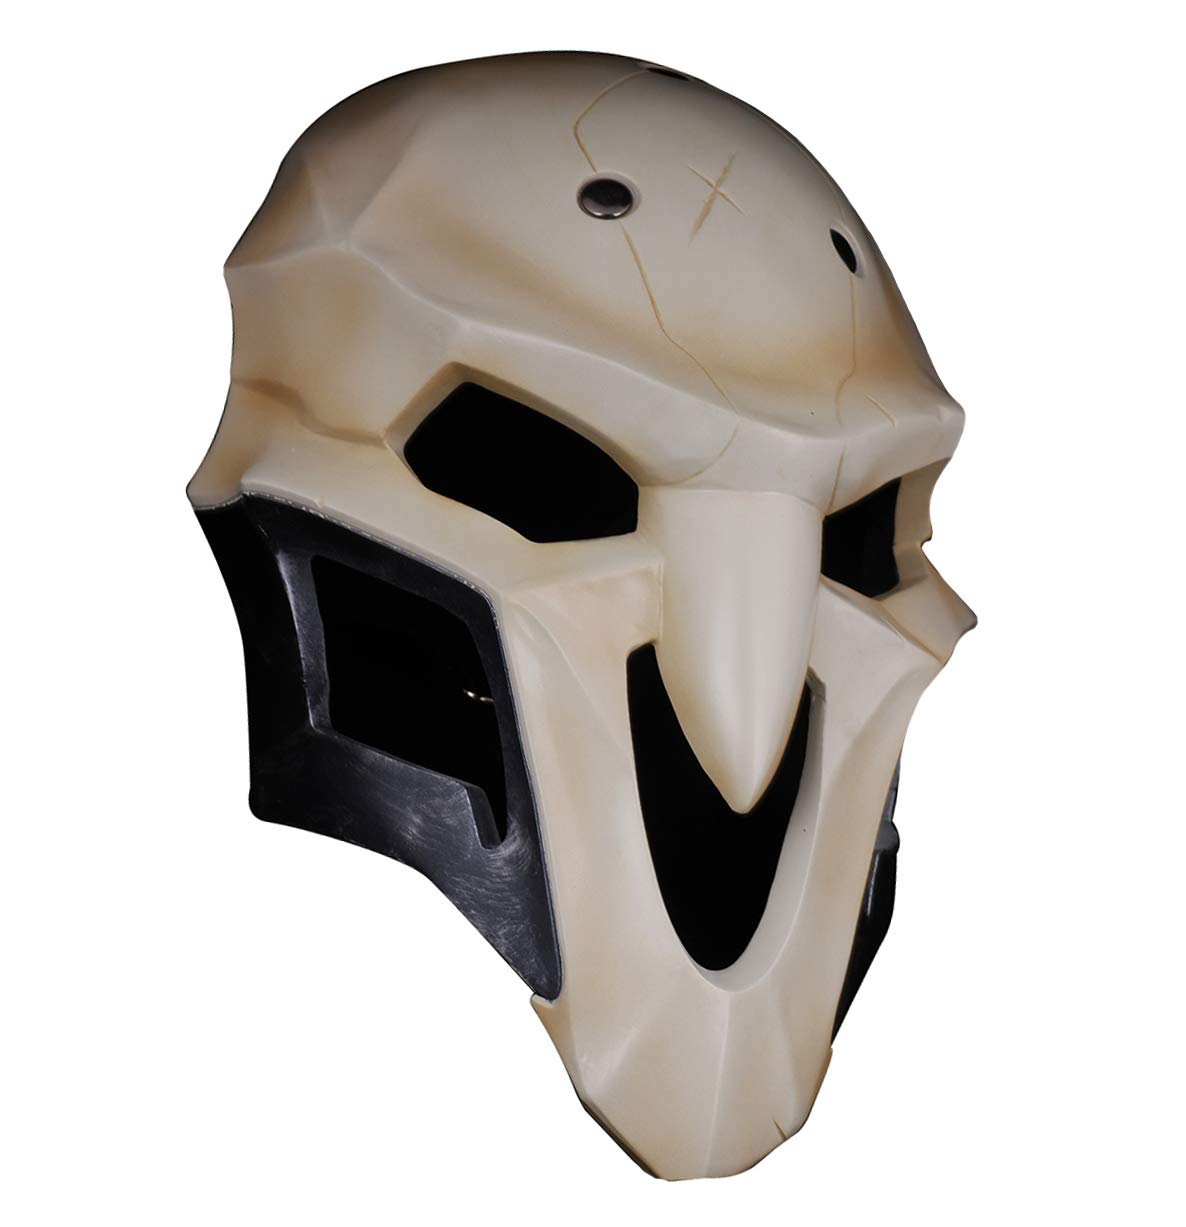 Gmasking Halloween Cosplay Mask Collectibles 1:1 Replica Props White